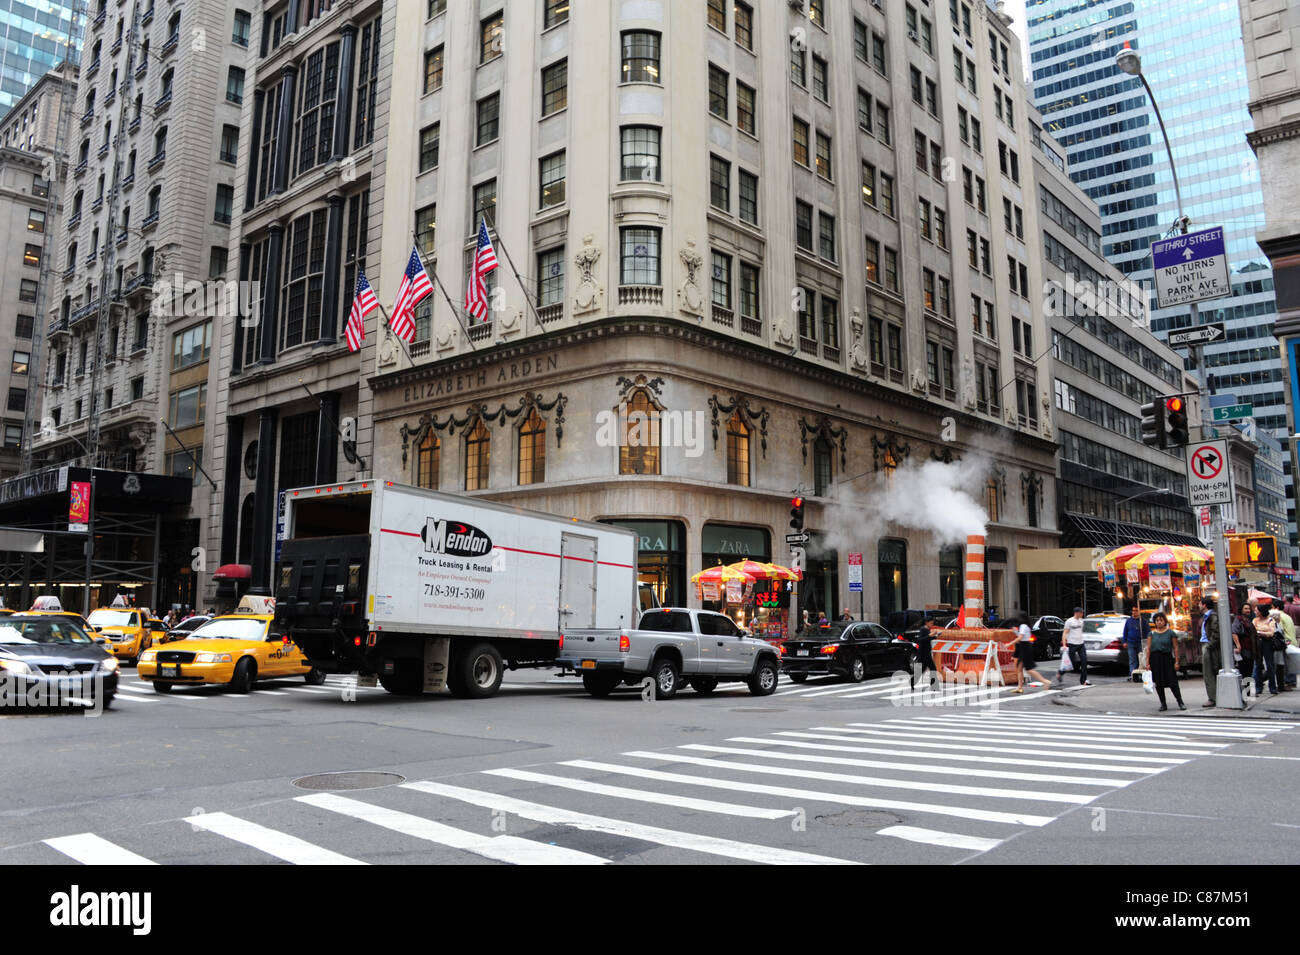 View East 56th Street 5th Avenue road-crossing, yellow taxis, cars, white van, people, red white plastic steam vent, - Stock Image